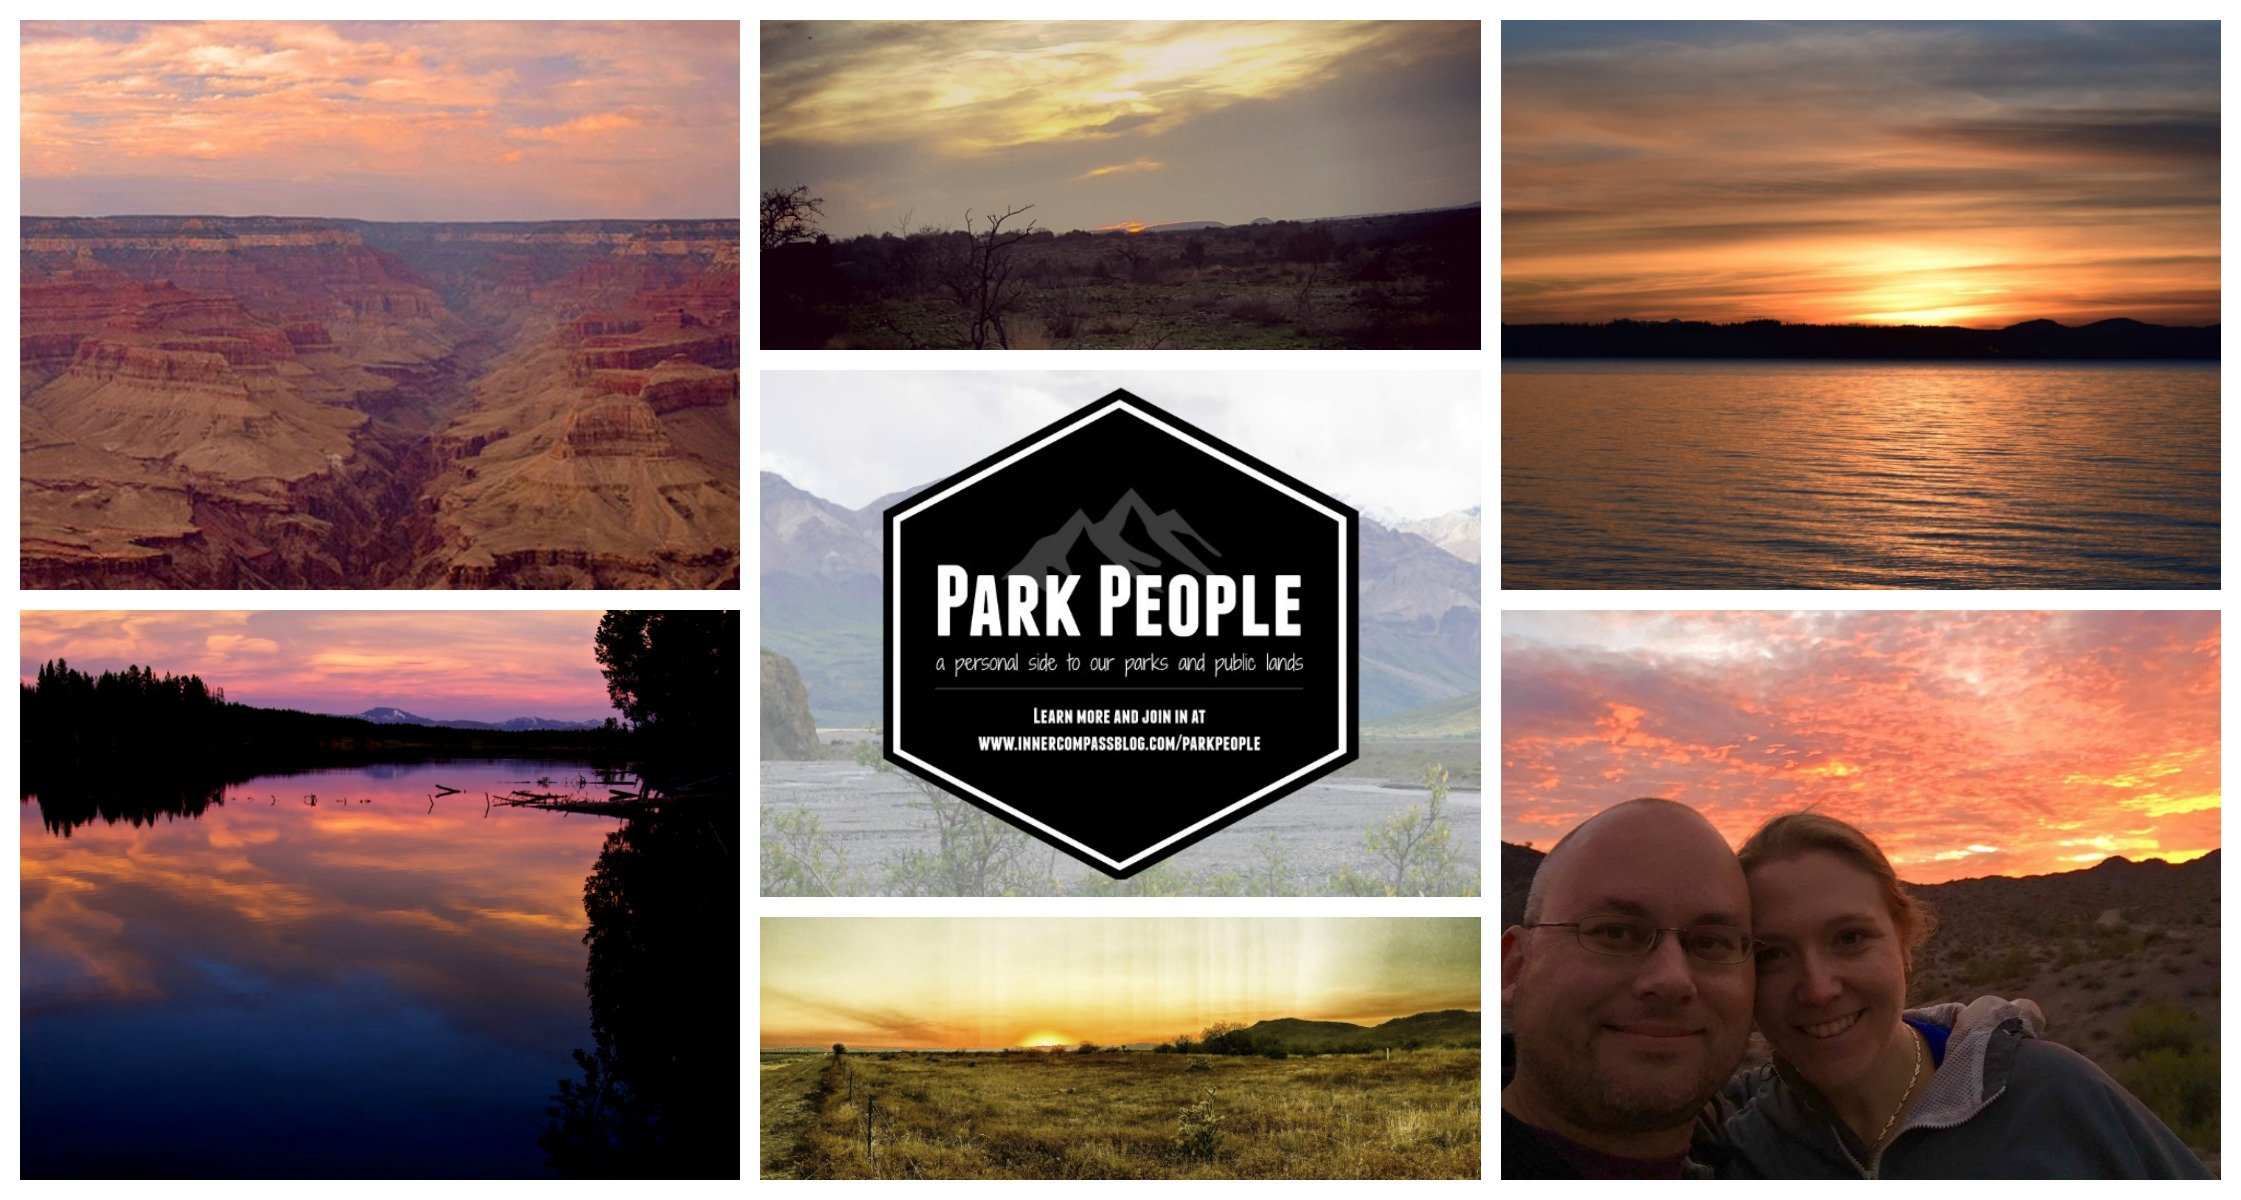 Park People Share Their Favorite Sunsets in National Parks and Public Land: Part 1